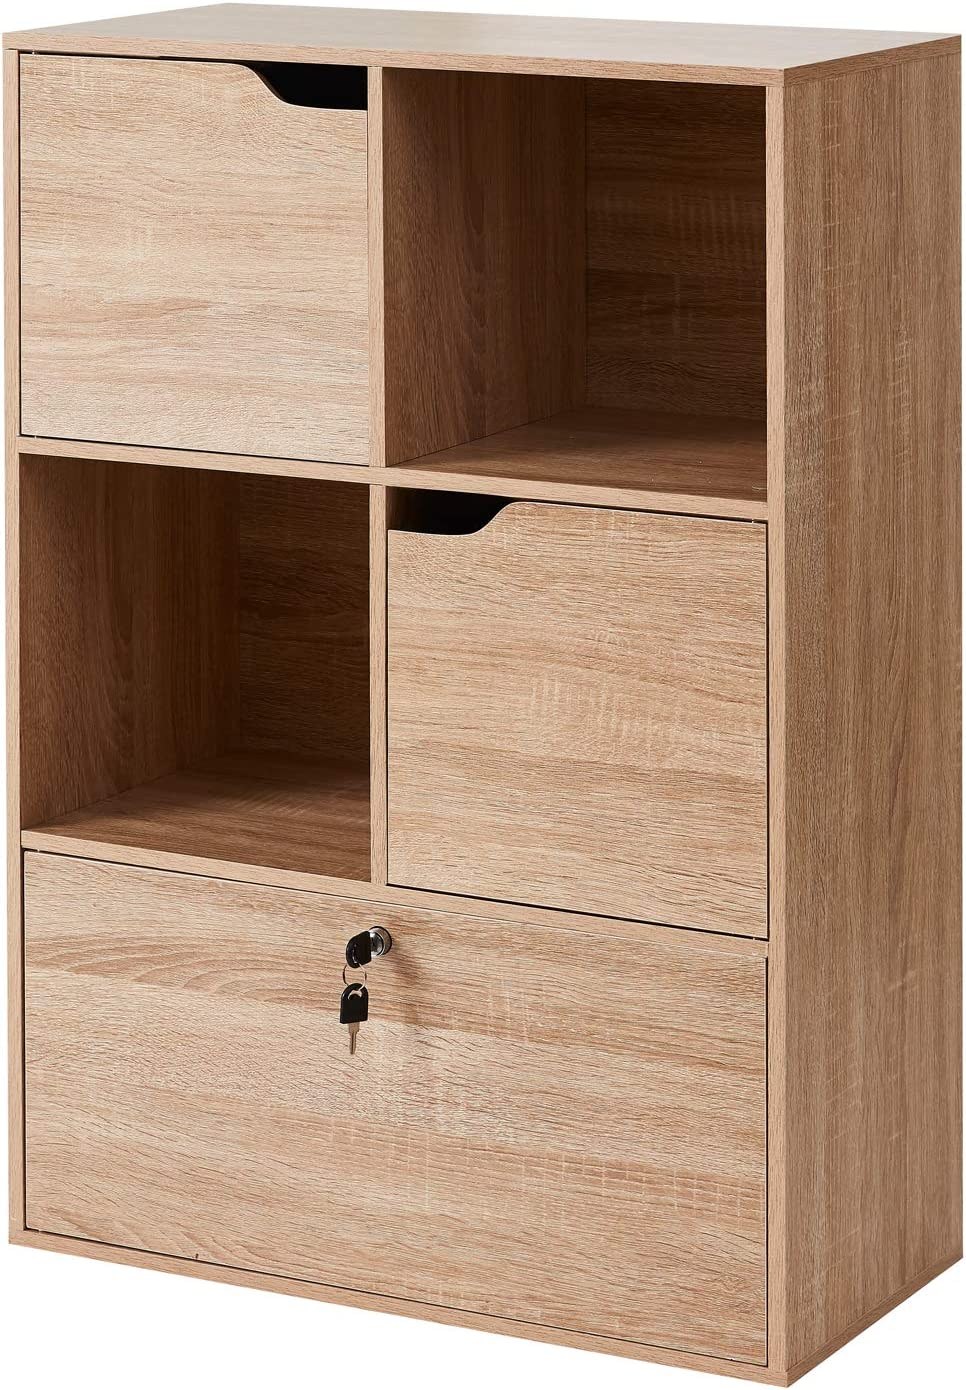 Yak A surprise price is realized About It Locking Ranking TOP20 Safe Floor Sonoma Bookshelf -